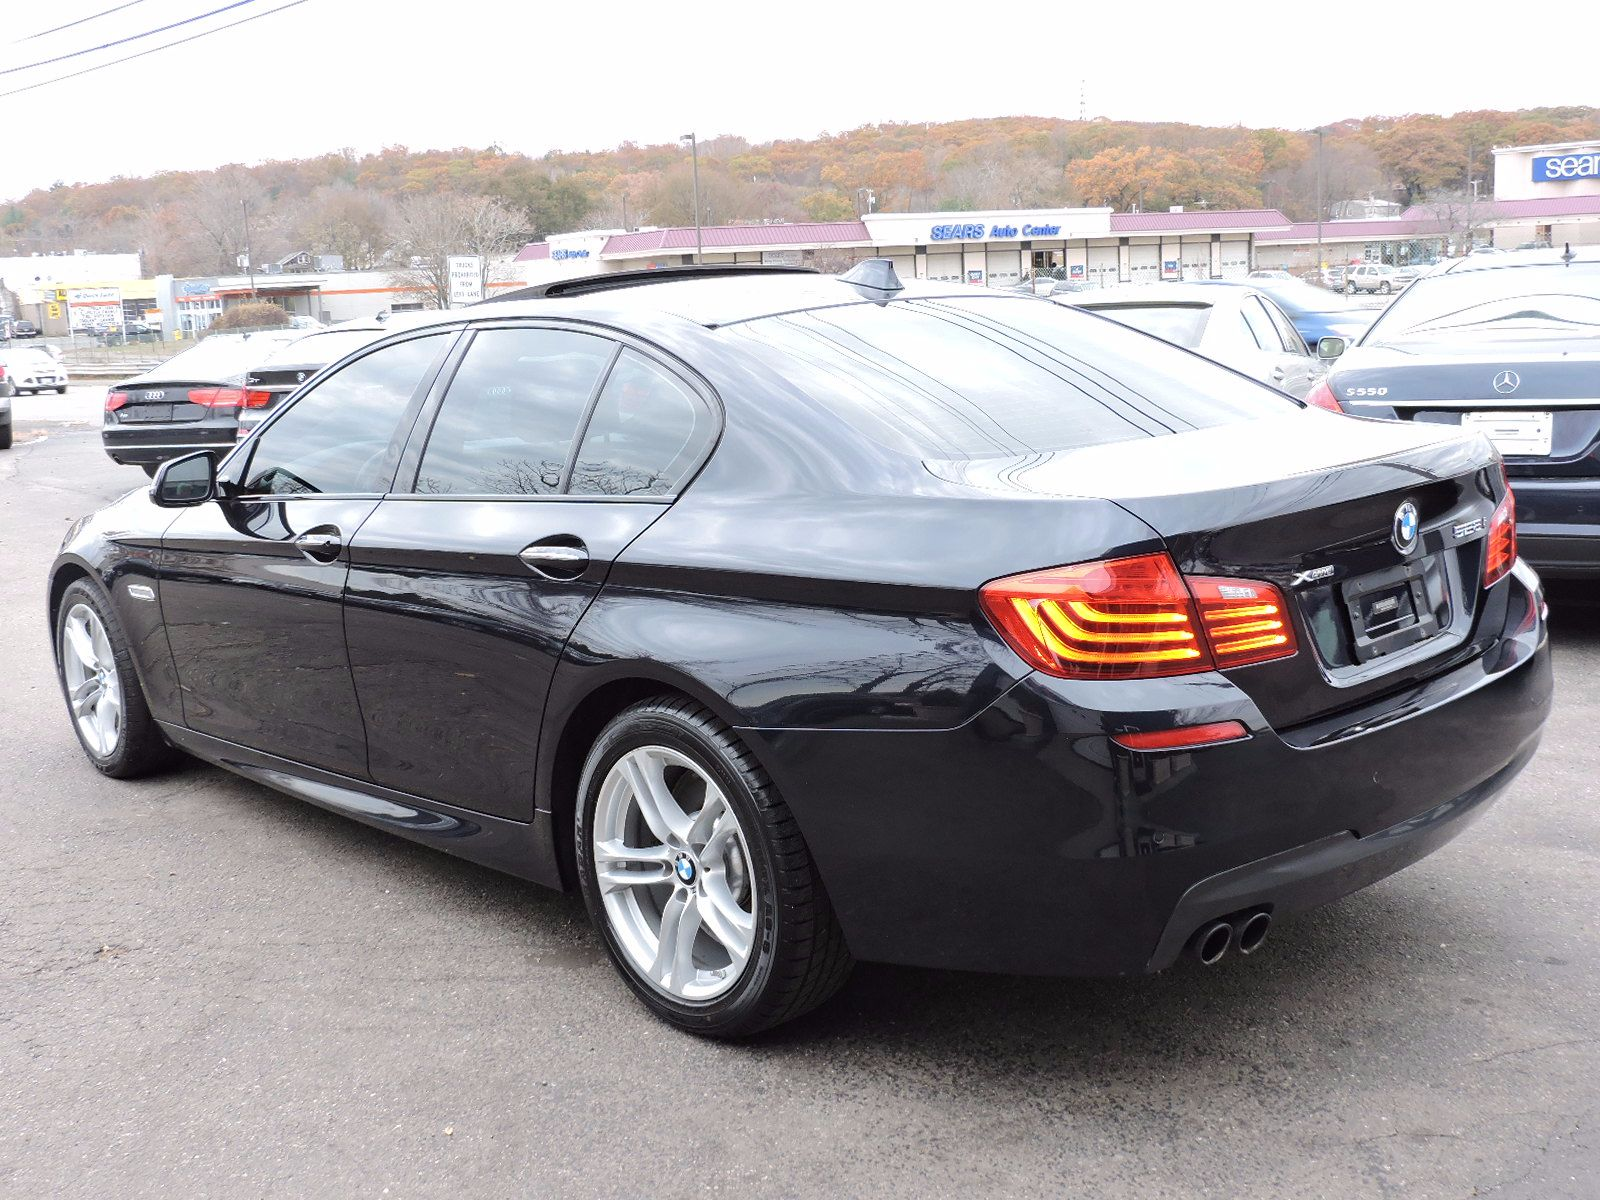 2014 BMW 5 Series - All Wheel Drive - M Package